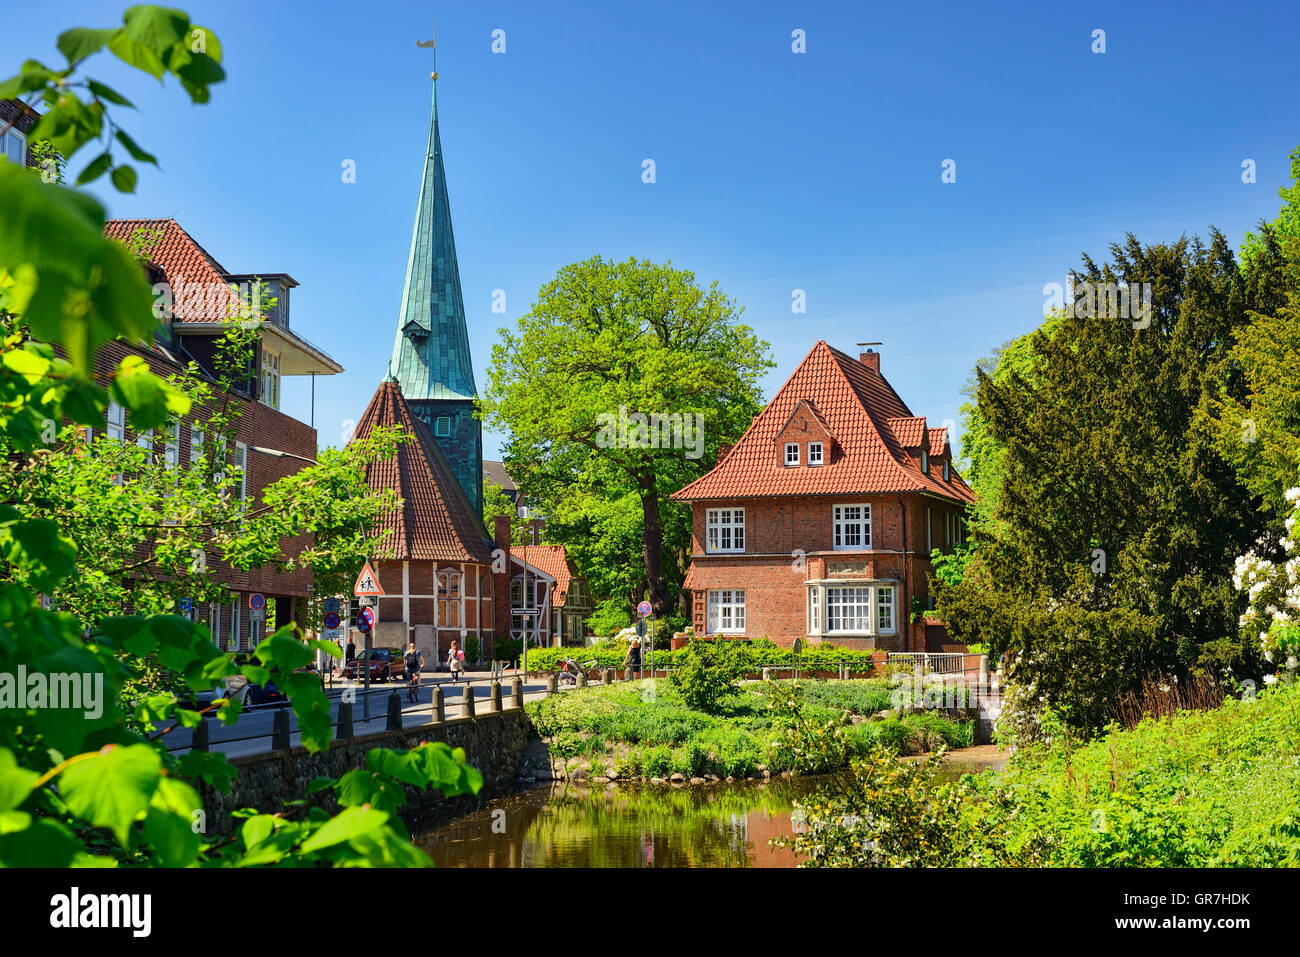 Badewannendoktor Hamburg Bergedorf Church In Bergedorf Hamburg Germany Stock Photo 117566671 Alamy